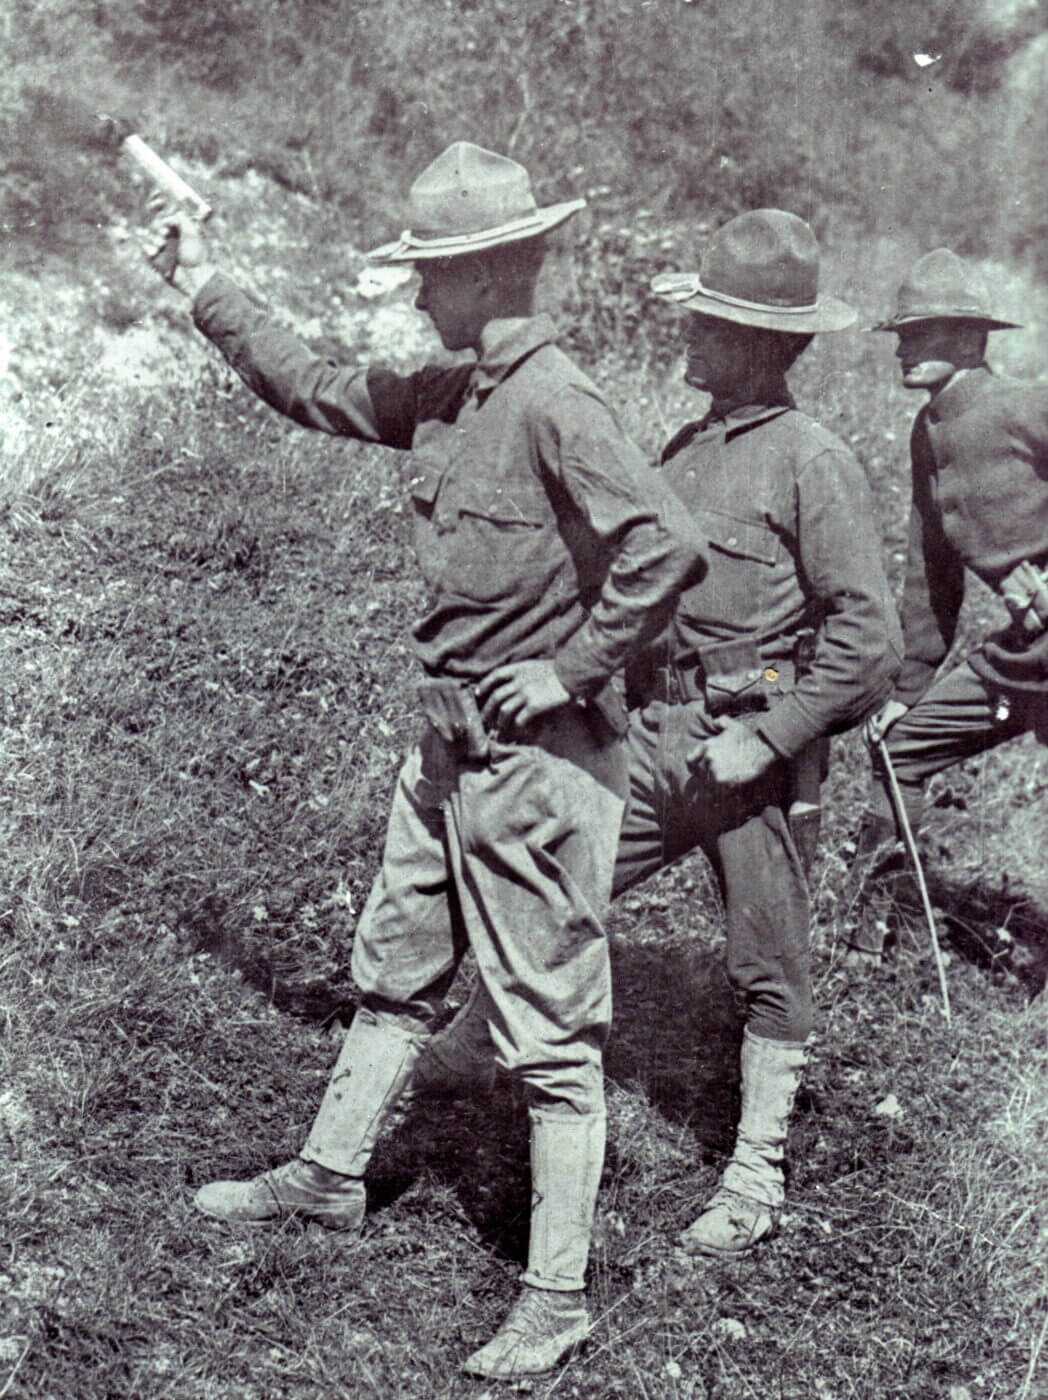 WWI pistol training in the US Army